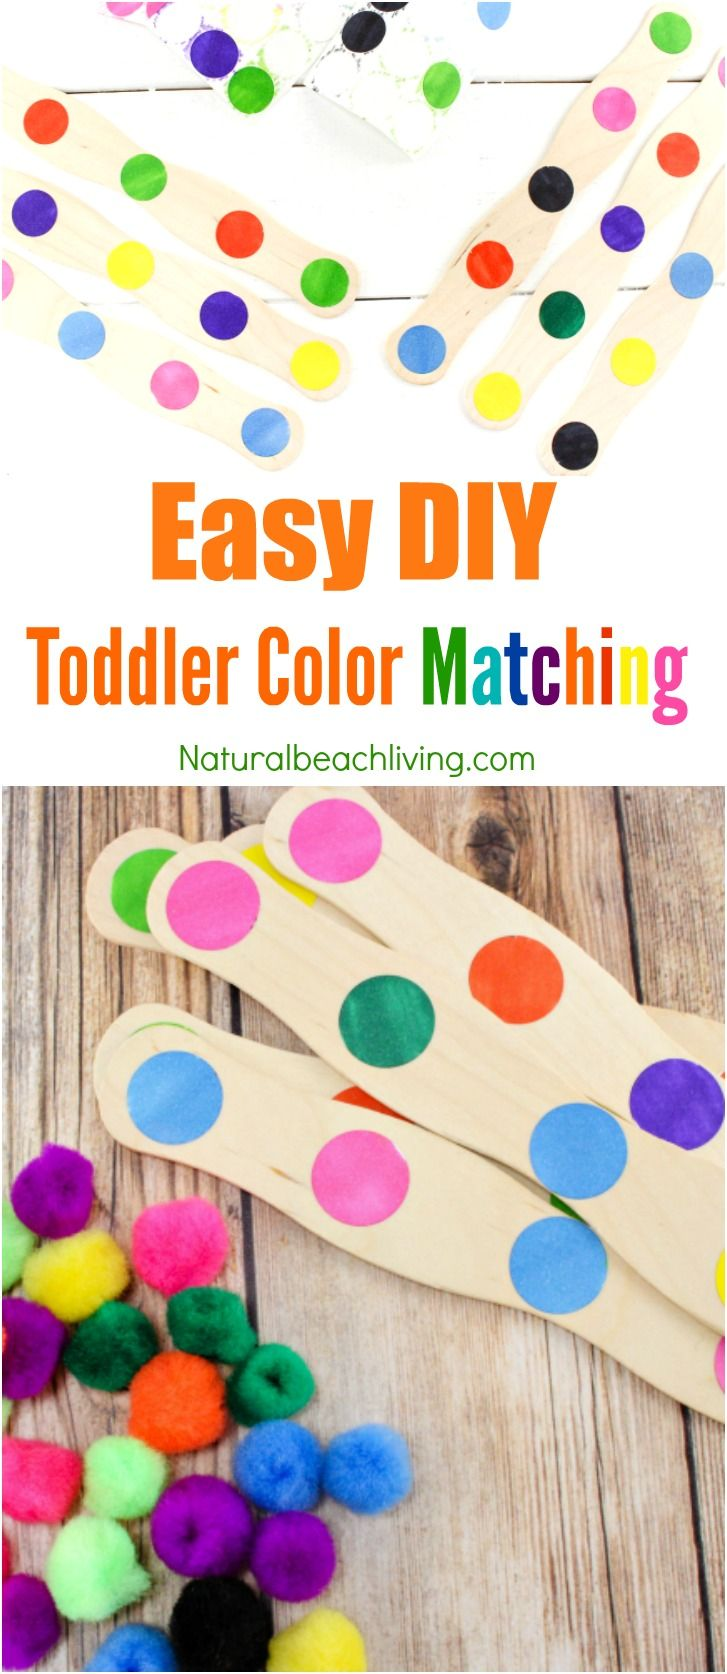 Colors preschool project - Easy Diy Color Activity For Preschool And Toddler Age Children Toddler Color Activities Fine